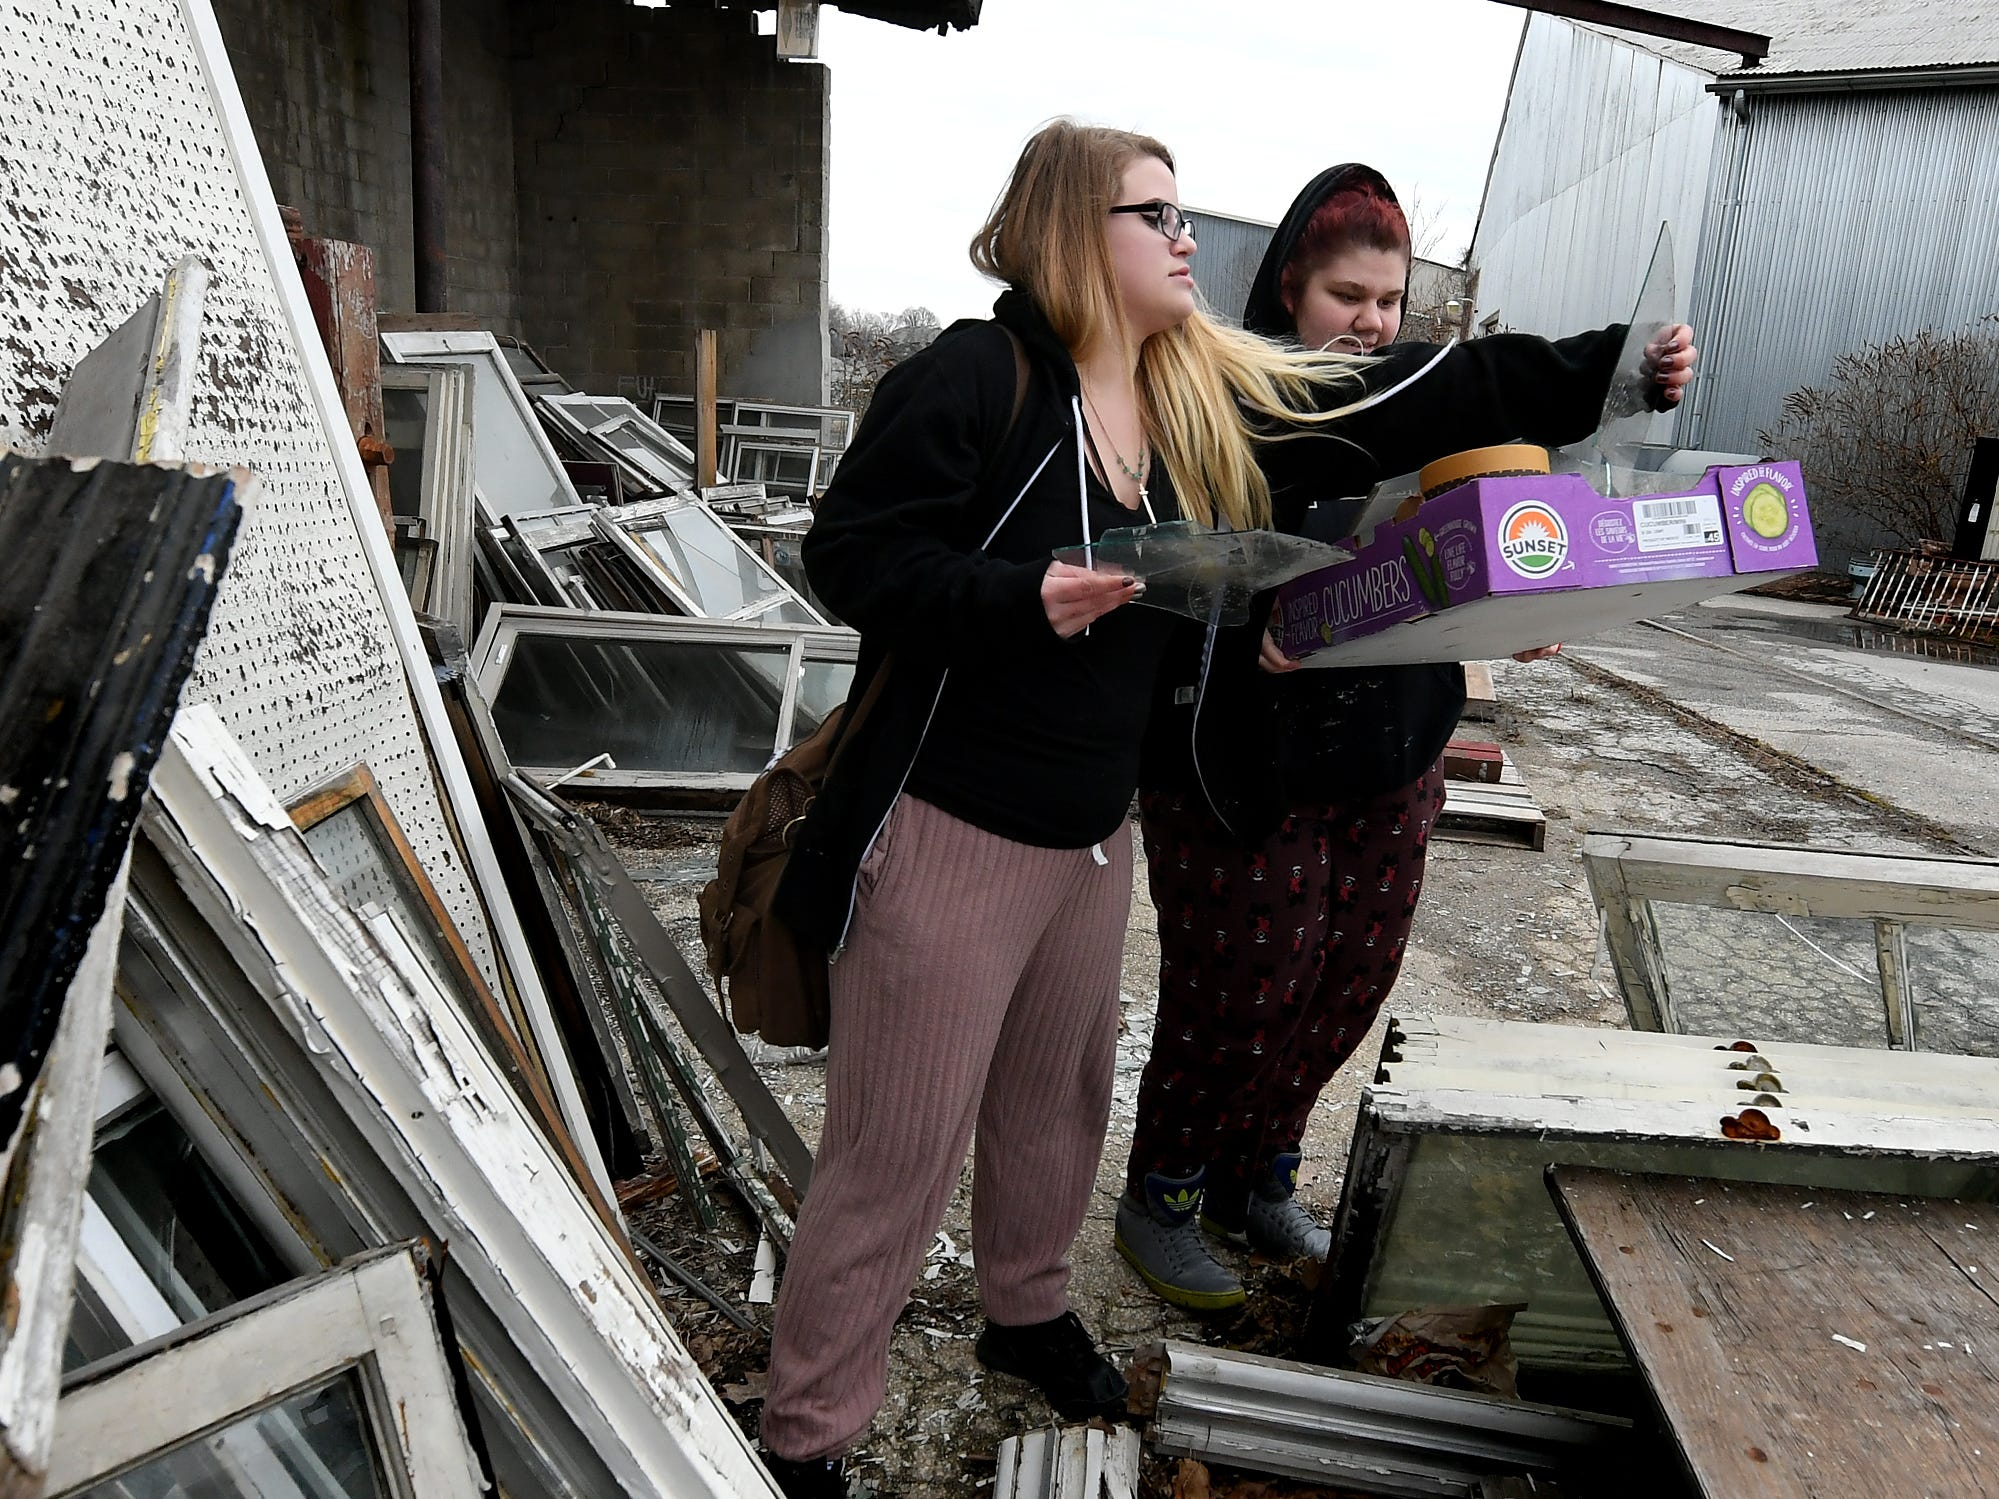 Red Land High School seniors Rebecca Waller and Mackenzie Burns, right, collect glass while choosing items for their entry in the York County Solid Waste Authority Recycled Art Contest during Picker Day at the architectural salvage warehouse Refindings in York City Saturday, Feb. 23, 2019. The waste authority is sponsoring the fifth annual contest for York County high school students to promote recycling and celebrate Earth Day. Students create sculptures by mid-April from the materials donated by Refindings and the contest exhibit will be on display in the Marketview Arts Gallery, 37 W. Philadelphia St., beginning Sunday, April 14. Contest winners will be announced there during an awards event April 18. Bill Kalina photo